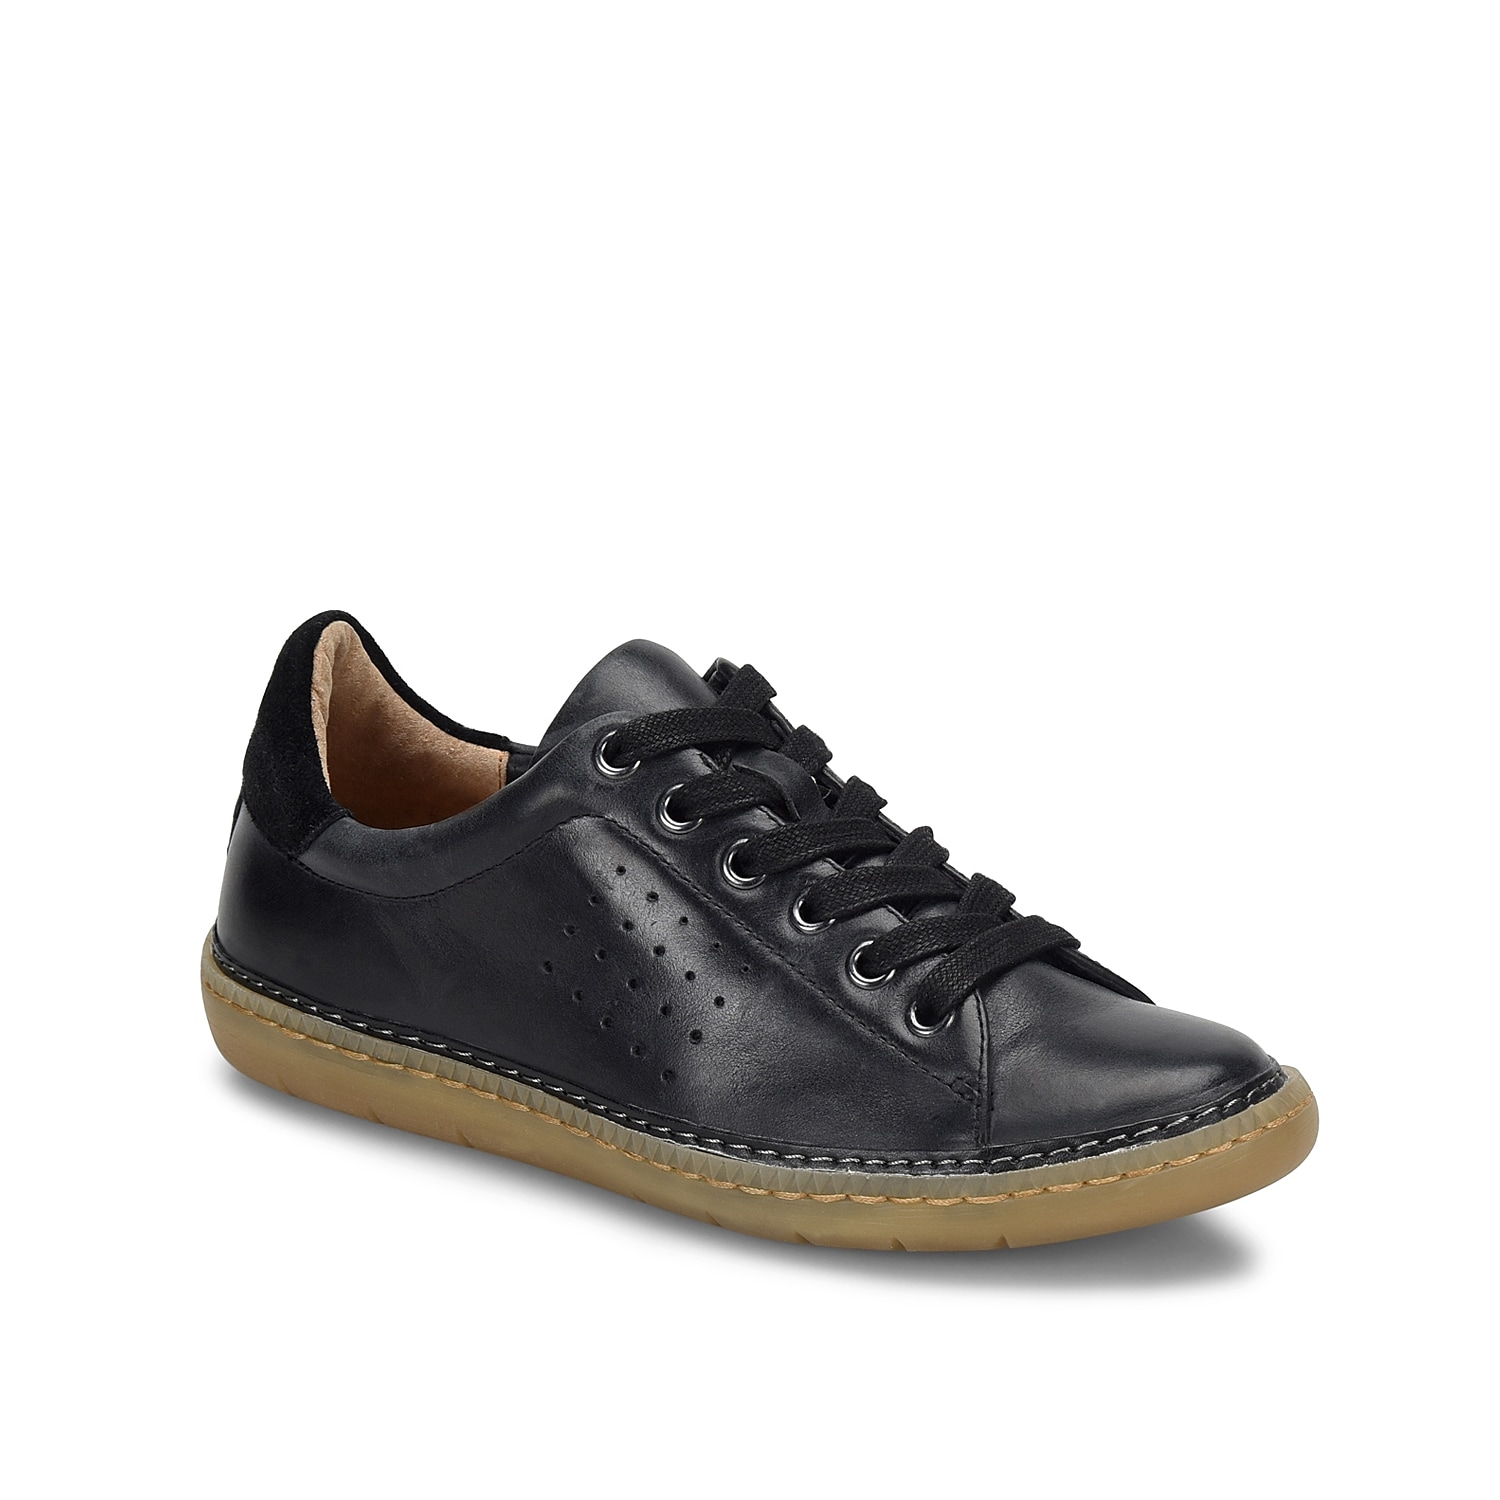 The Arianna sneaker from Sofft is a chic staple in every fashionista\\\'s closet. Highlighted with perforated detail on the sides, this sneaker features padded collar and leather lined footbed.